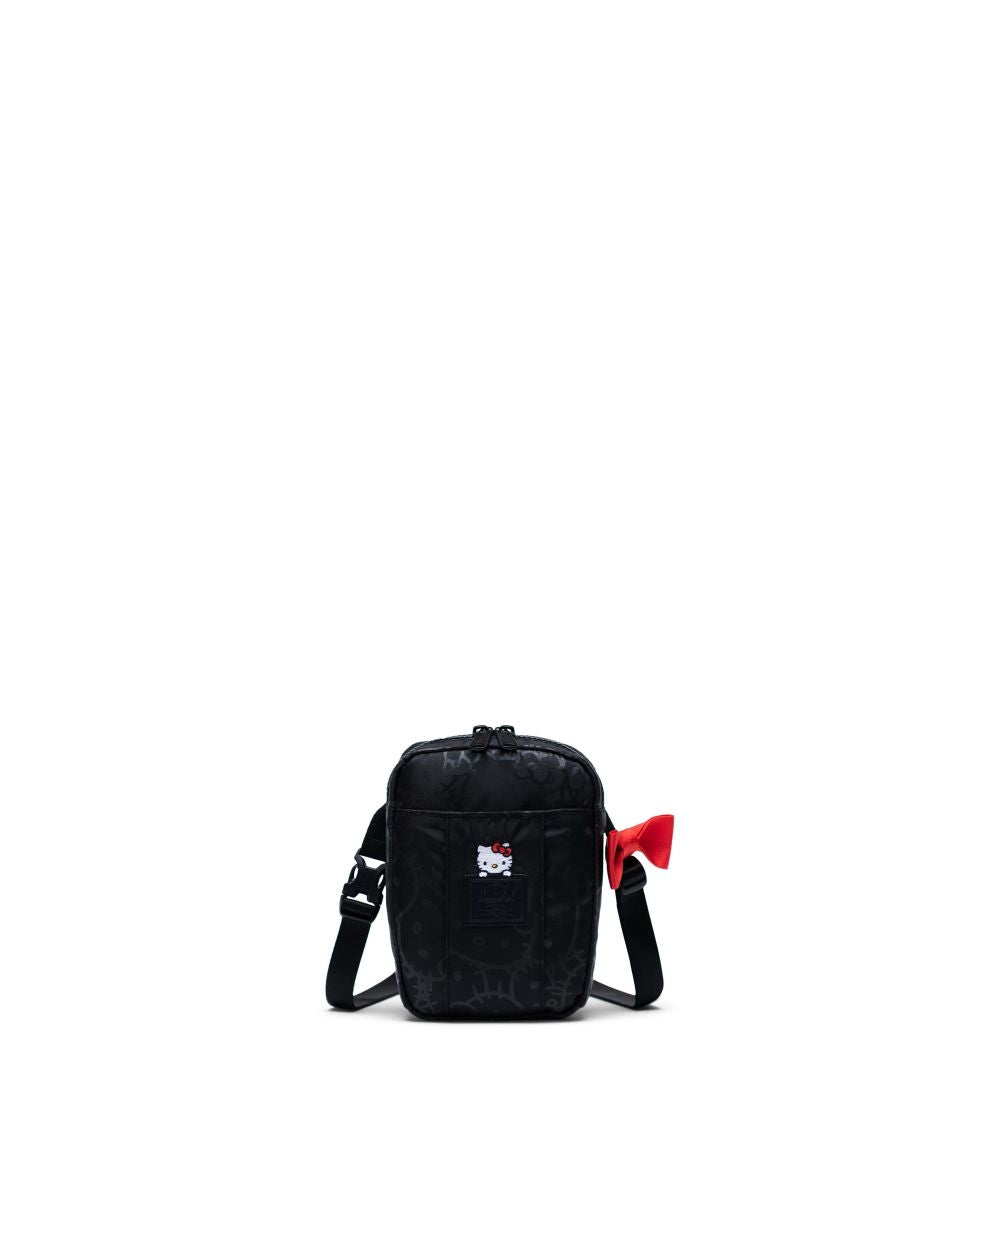 Herschel Supply Co -  Hello Kitty Cruz Crossbody, Black